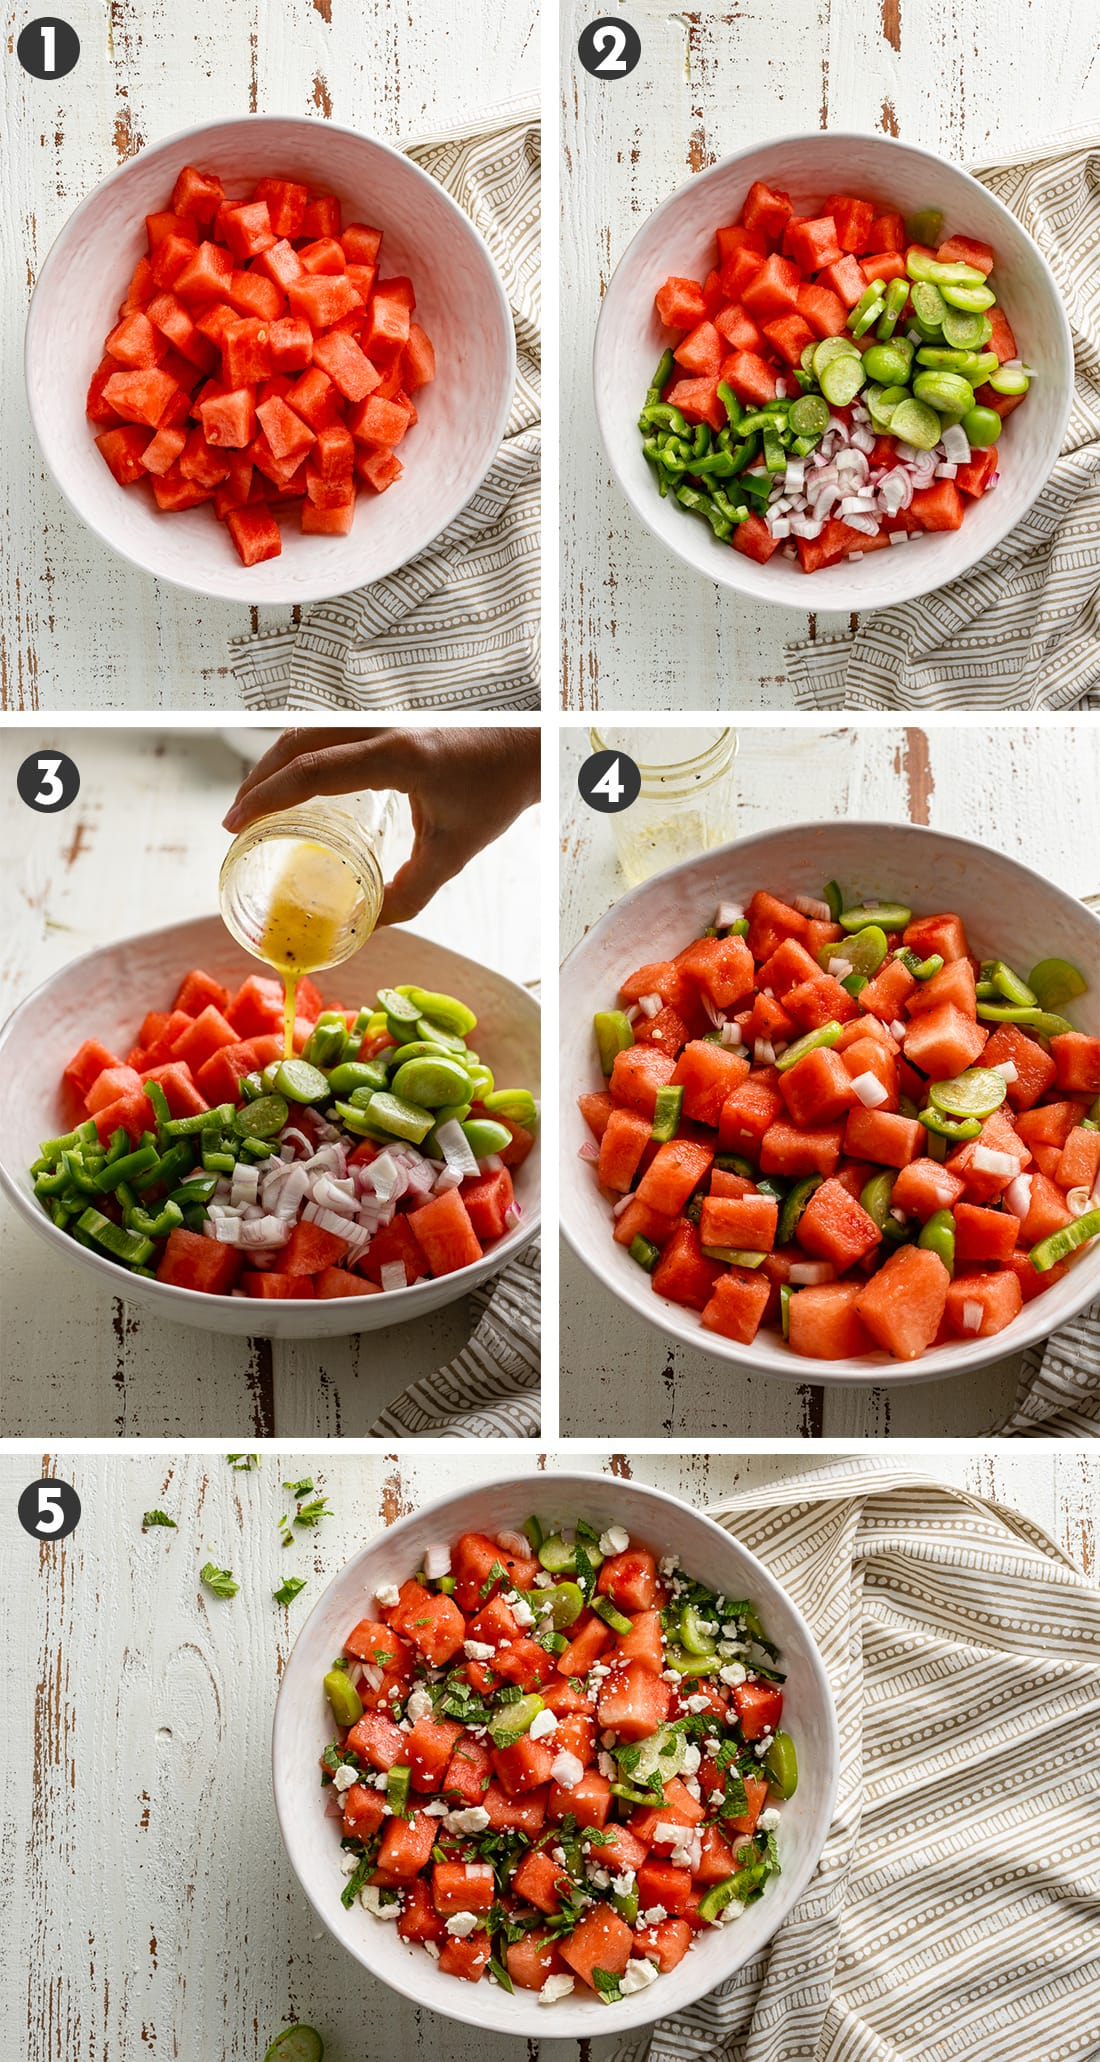 Step-by-step photos showing how to assemble a chilled watermelon salad.